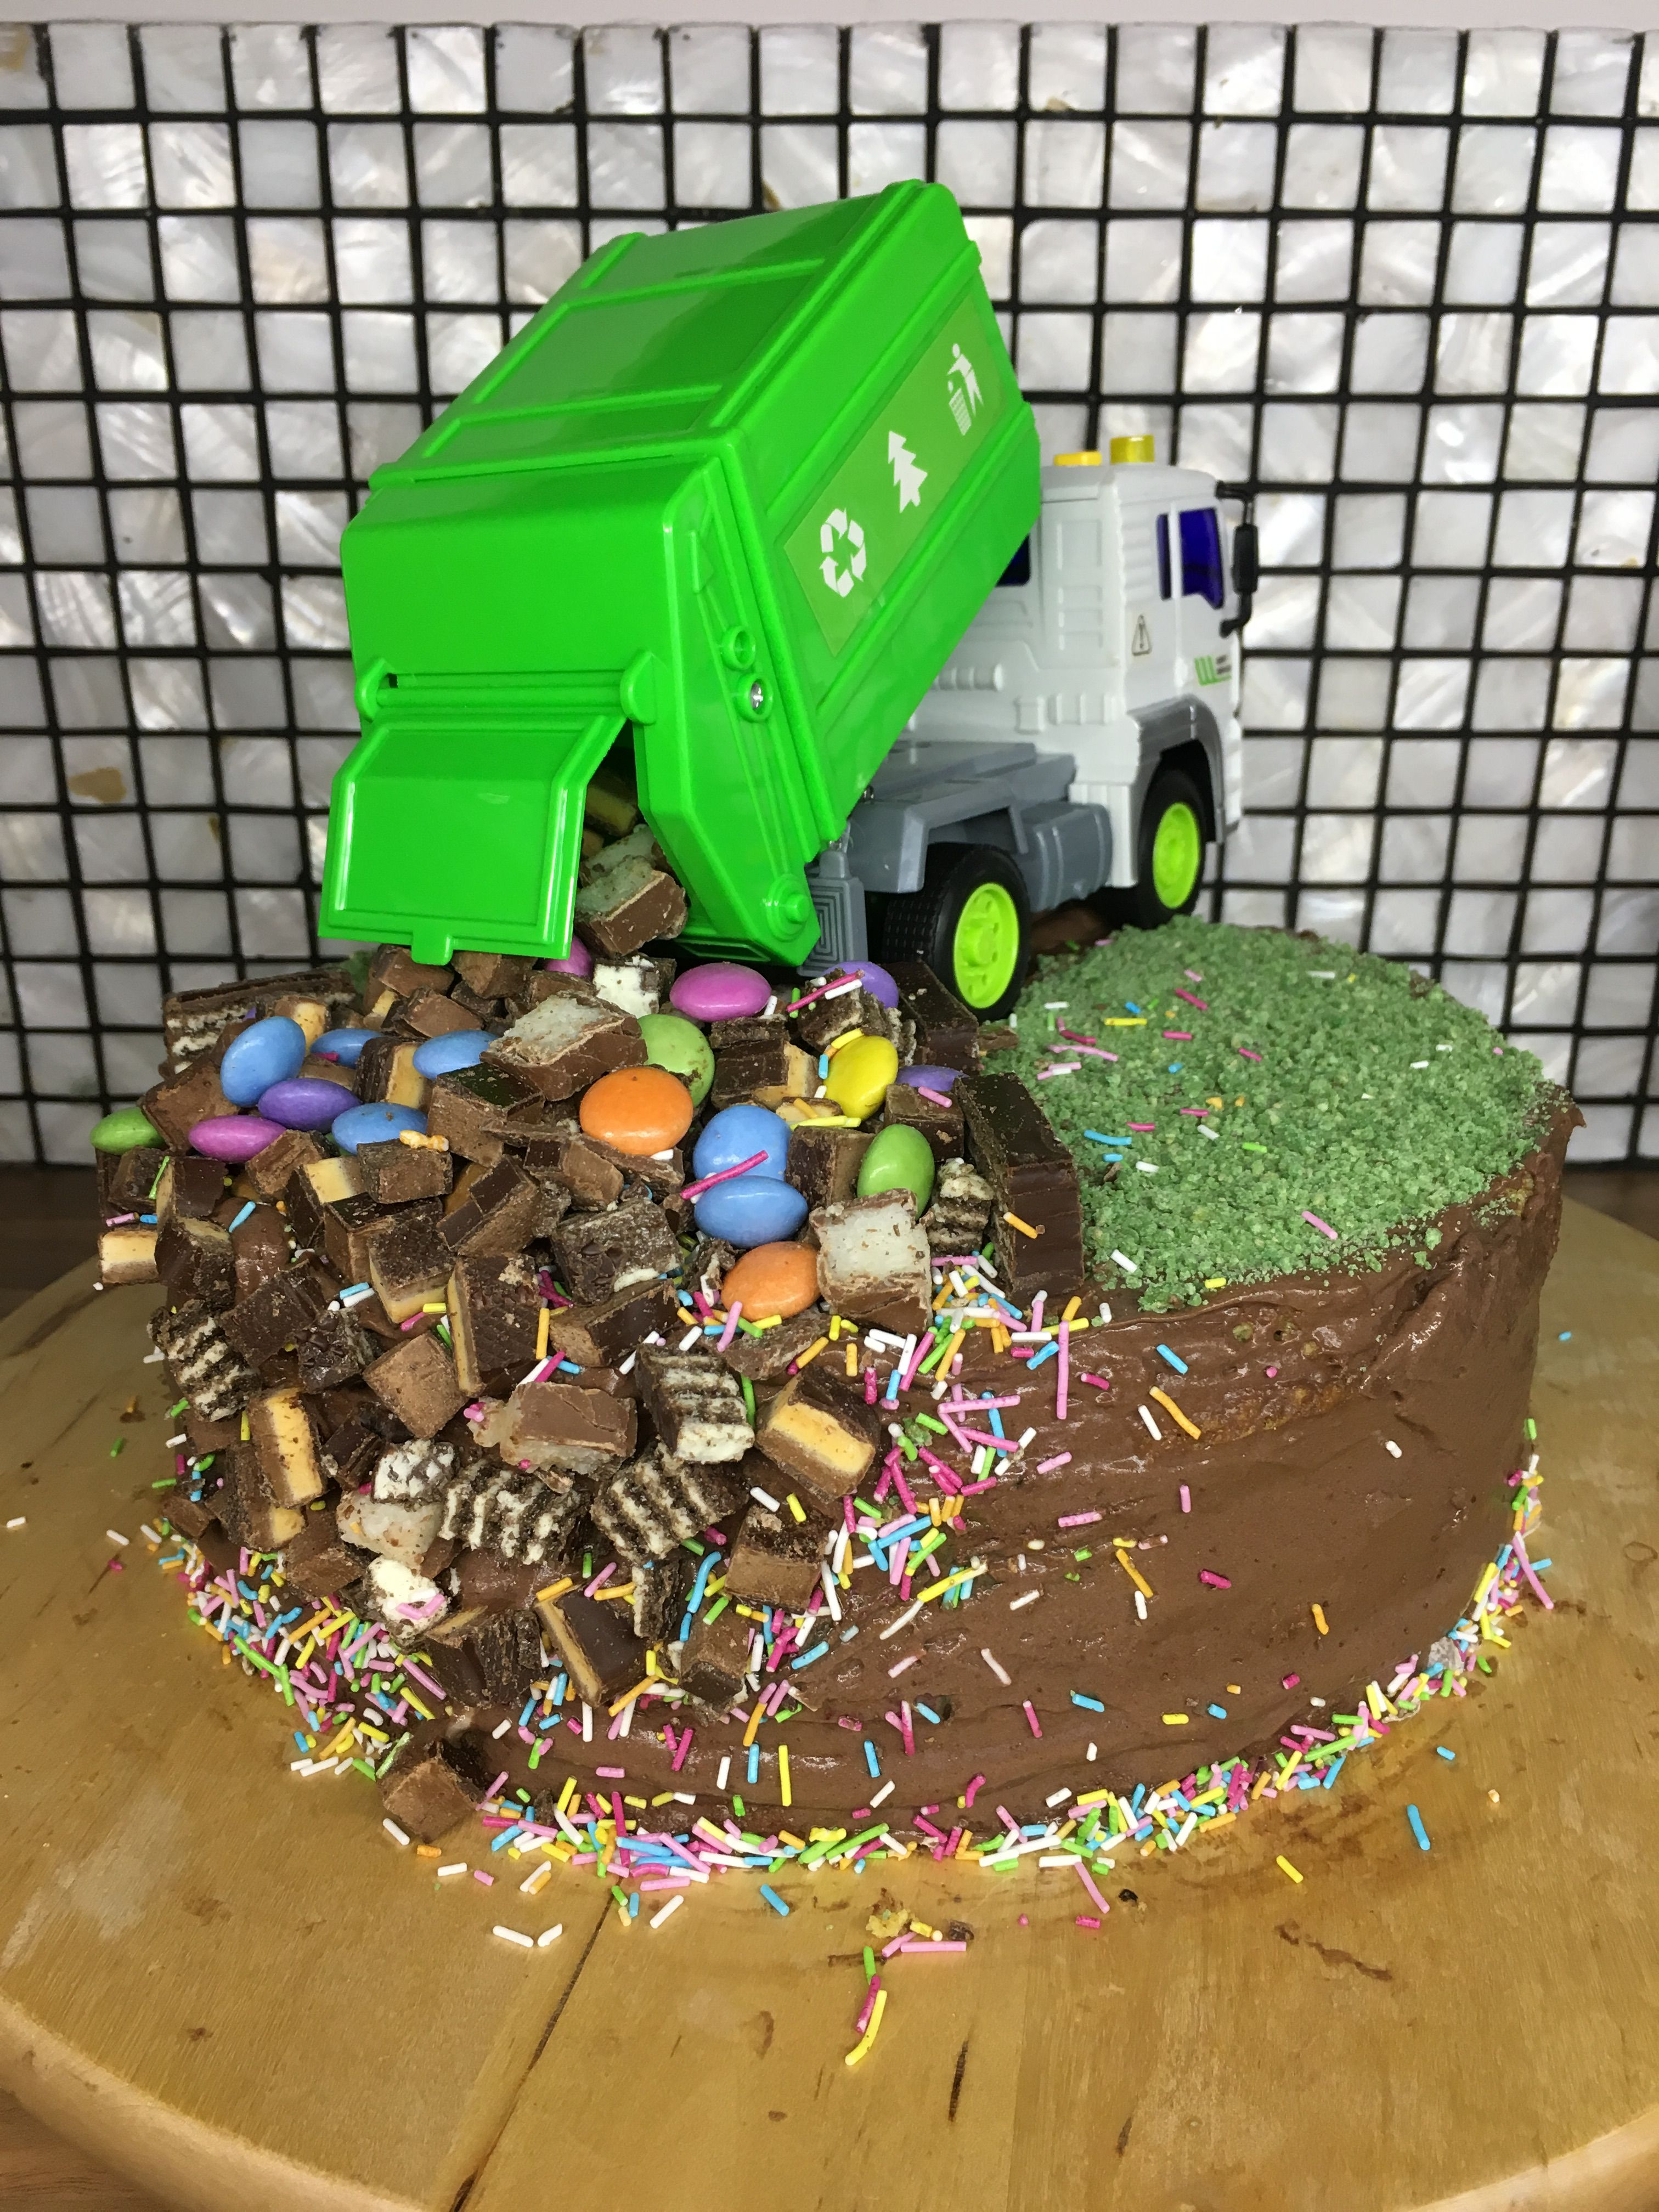 Groovy Garbage Truck Cake With Images Truck Birthday Cakes Trucks Funny Birthday Cards Online Elaedamsfinfo